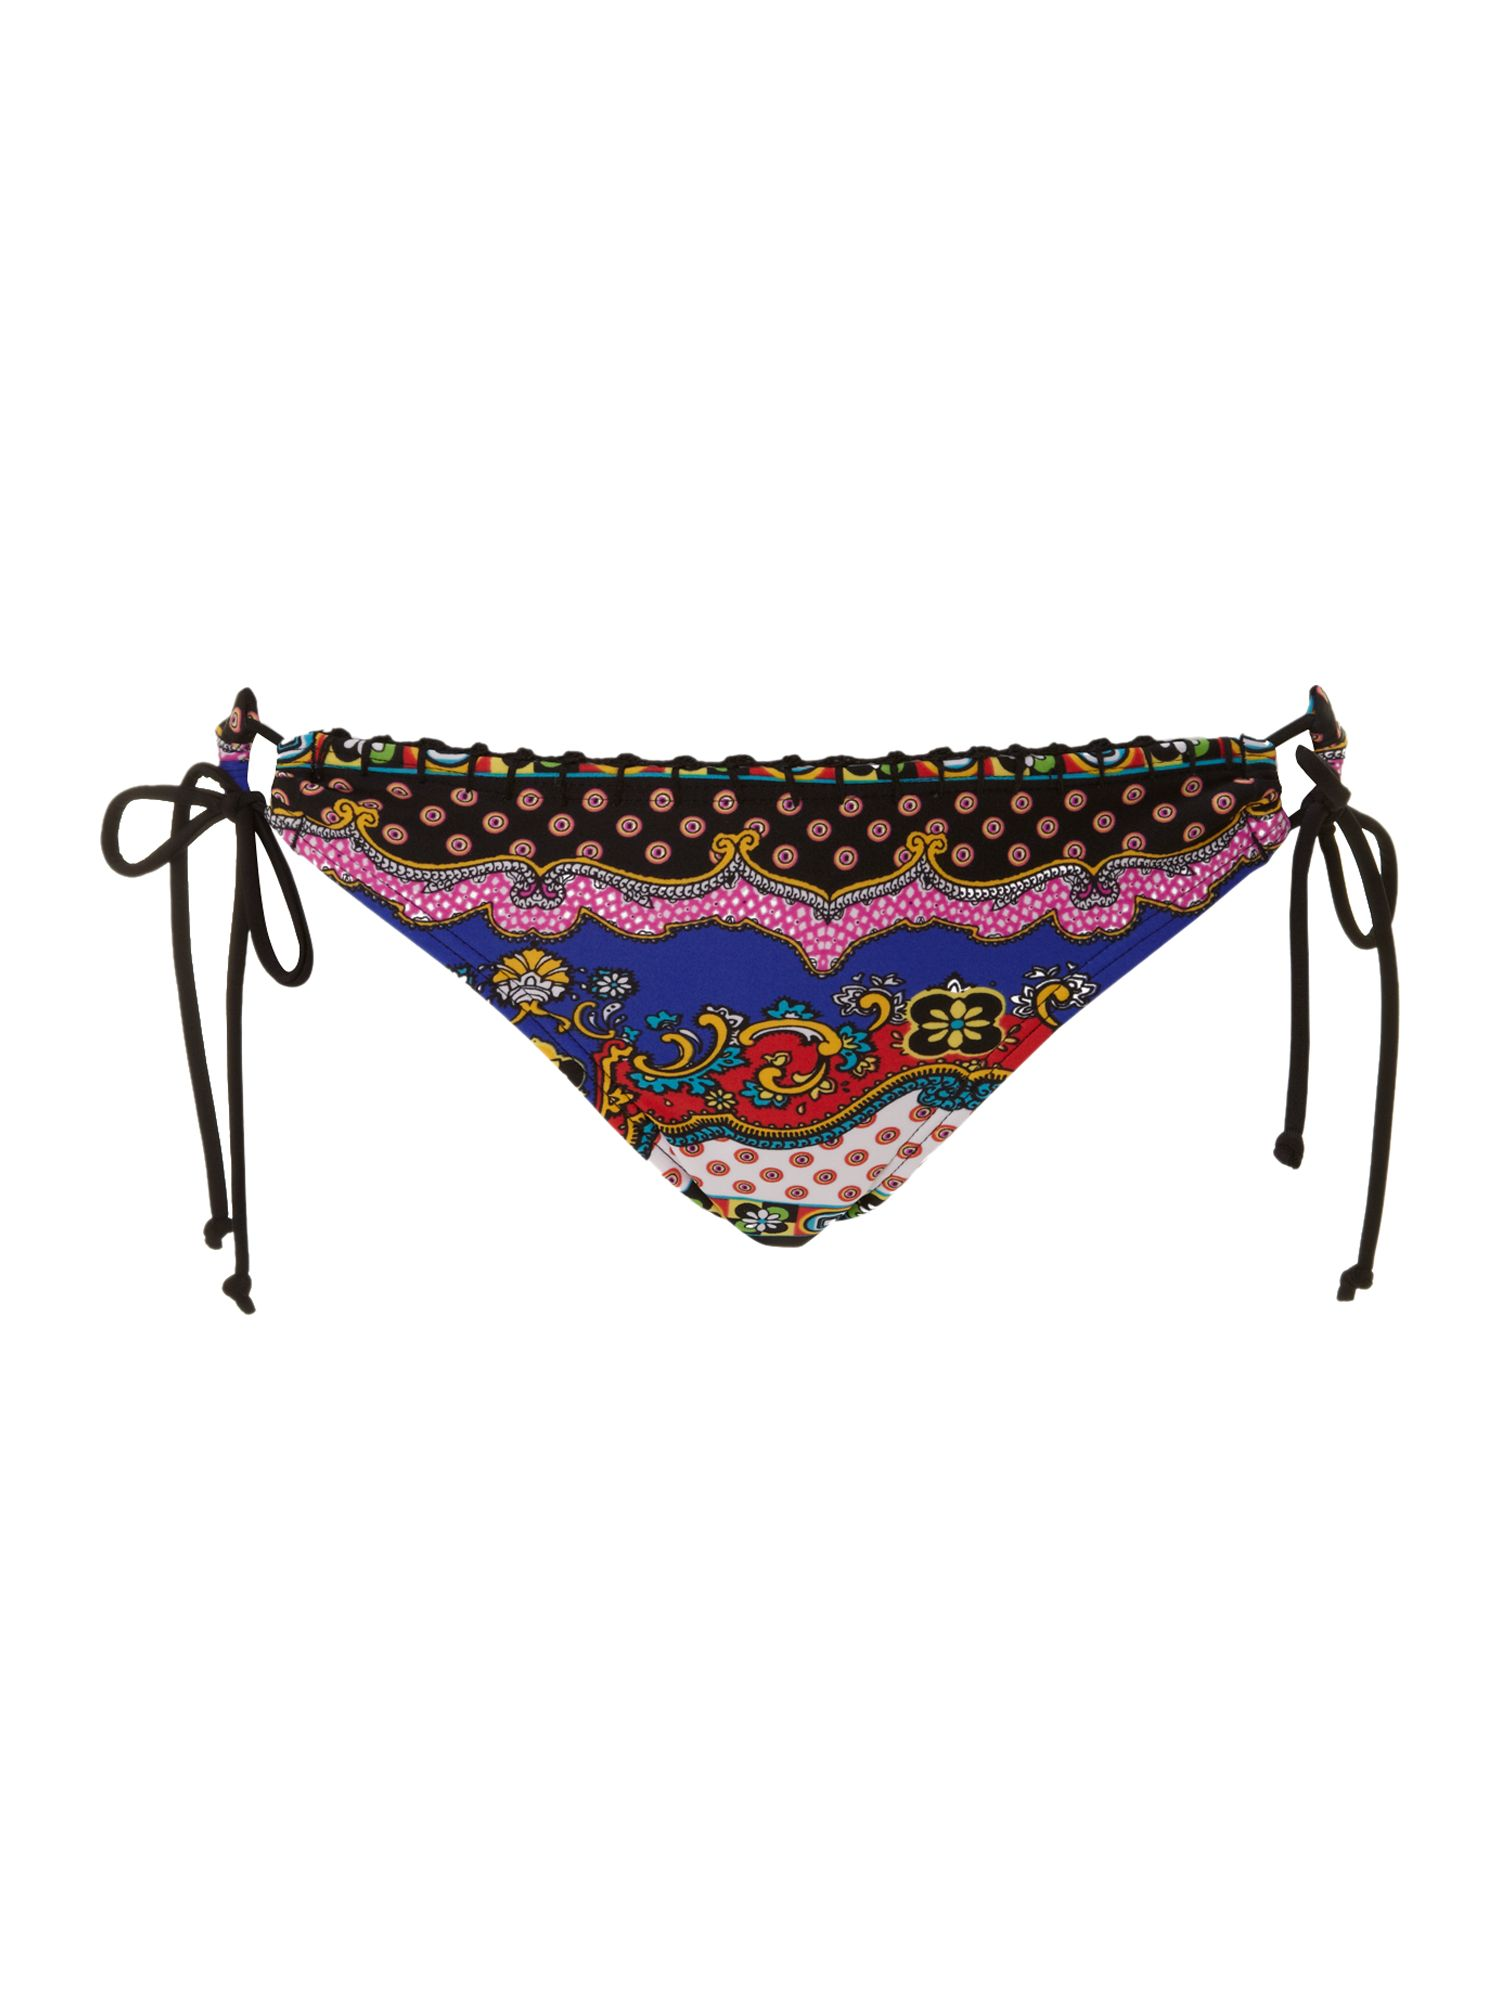 Scarf city chick hipster brief